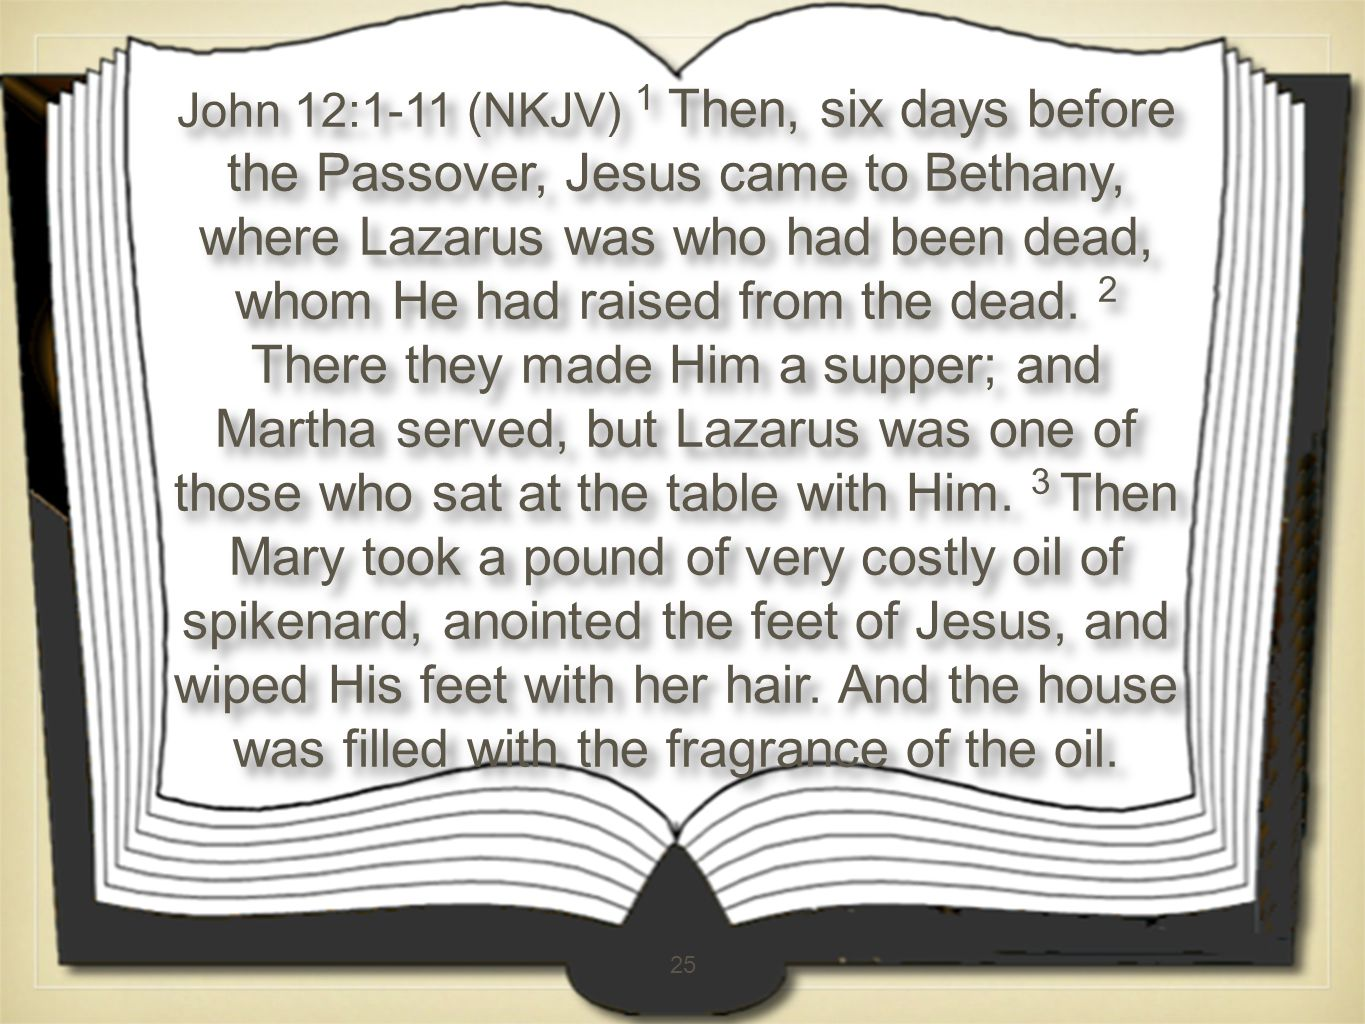 25 John 12:1-11 (NKJV) 1 Then, six days before the Passover, Jesus came to Bethany, where Lazarus was who had been dead, whom He had raised from the dead.